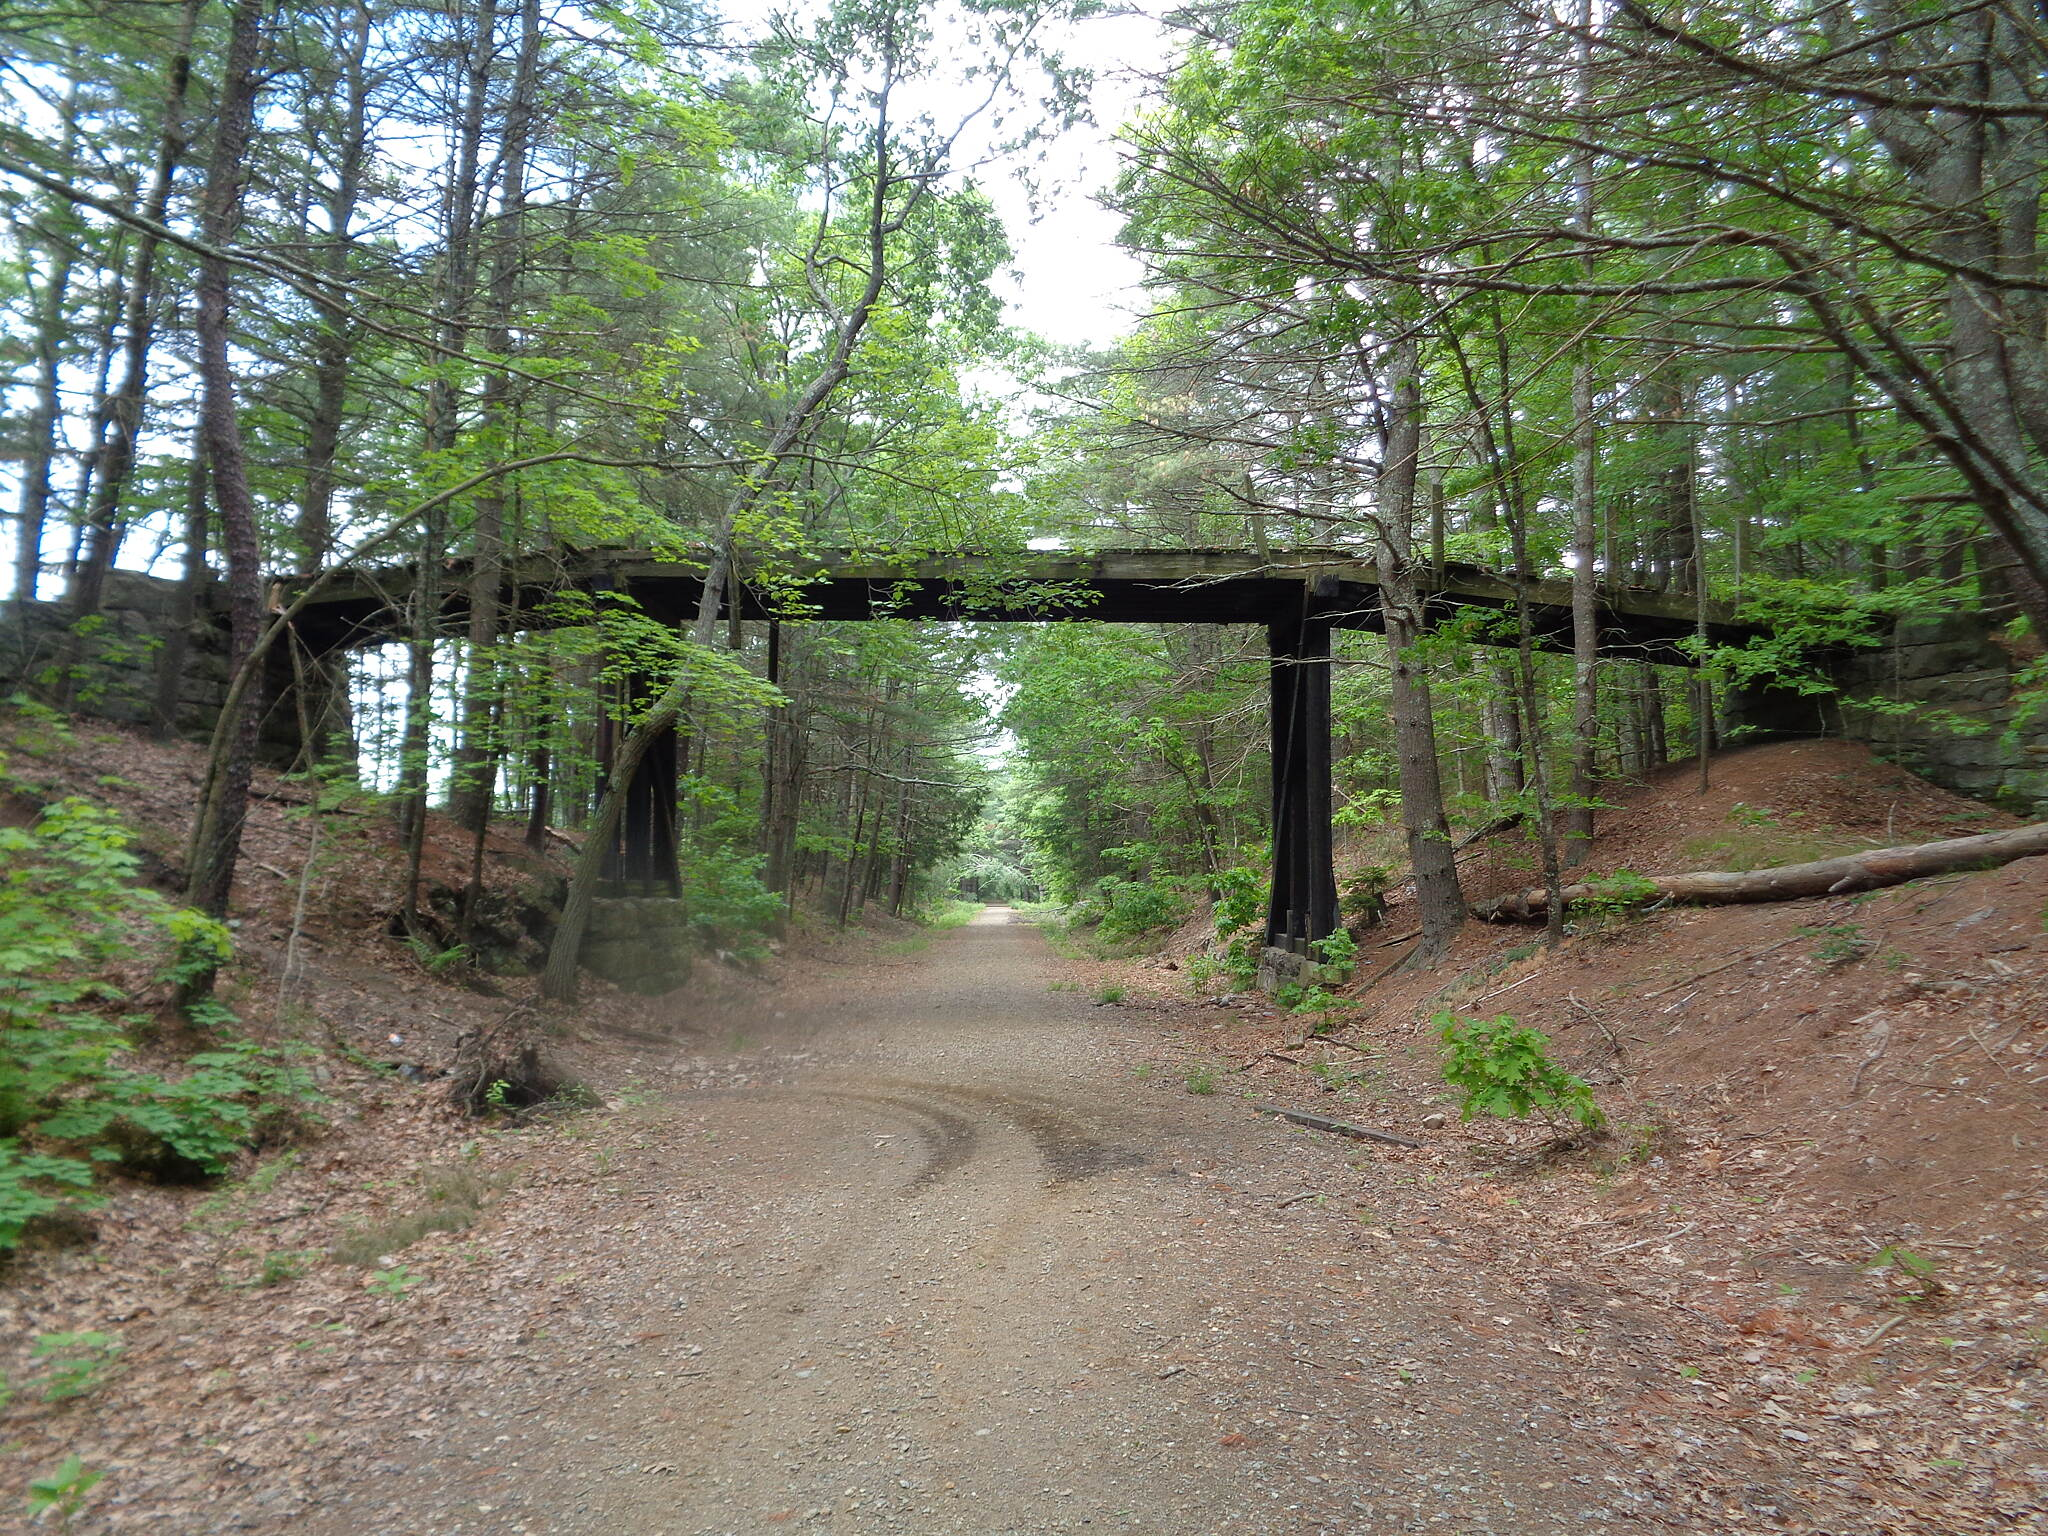 Air Line State Park Trail Old cattle bridge, Thompson Looking west at old cattle bridge over the Airline, just west of the MA/CT state line in Thompson, CT 6/4/16. Bridge is very near an old buried stone enclosure of unknown origin.